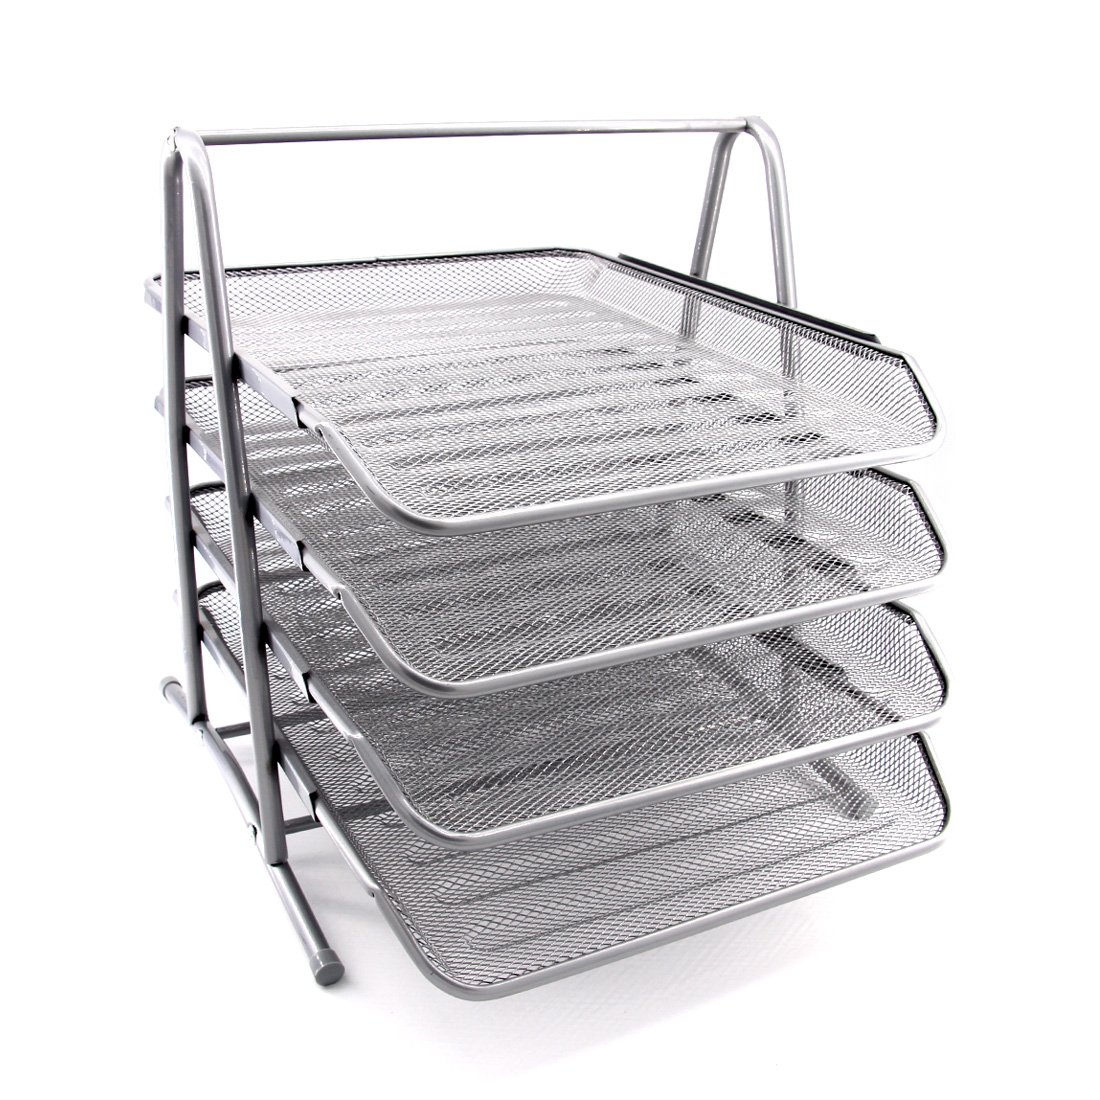 HAODE Fashion 4 Tiers Steel Mesh Document Tray, File Basket, Office Desk Organizer, Letter Tray Organizer, Desktop Document Paper File Organizer, Silver by HAODE Fashion (Image #2)